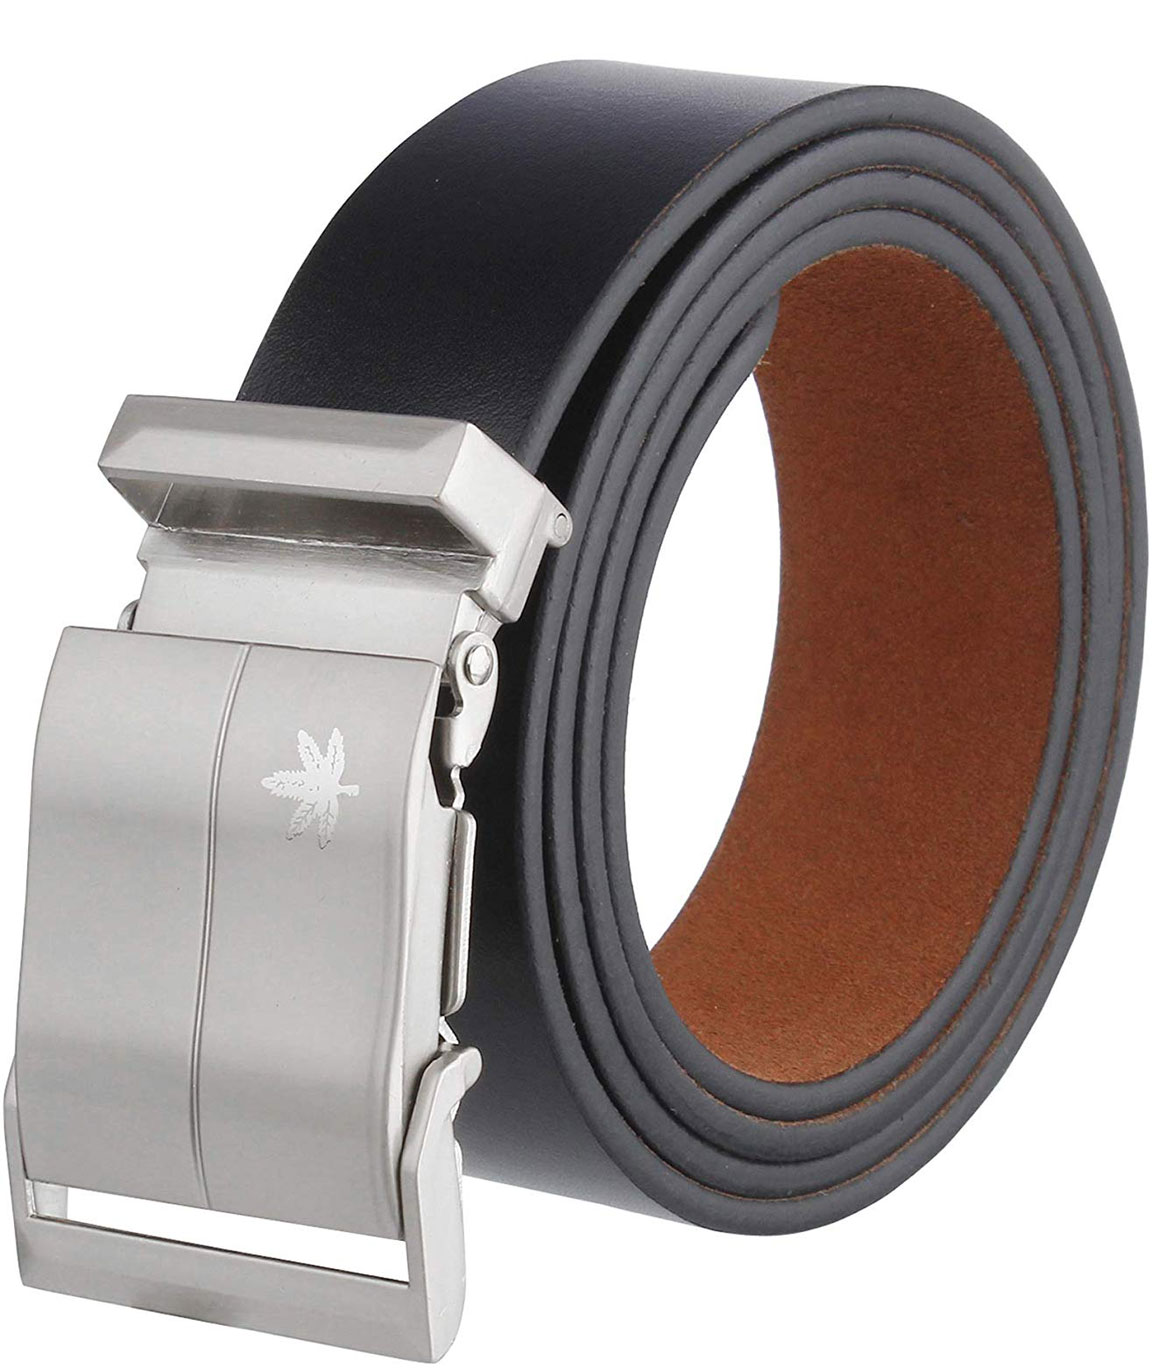 ZORO Mens Genuine Leather Belt (1 Year Guarantee) - belts for mens - belts for men casual stylish leather- belts for men formal branded, mens belt, brown belt, formal belt with army buckle